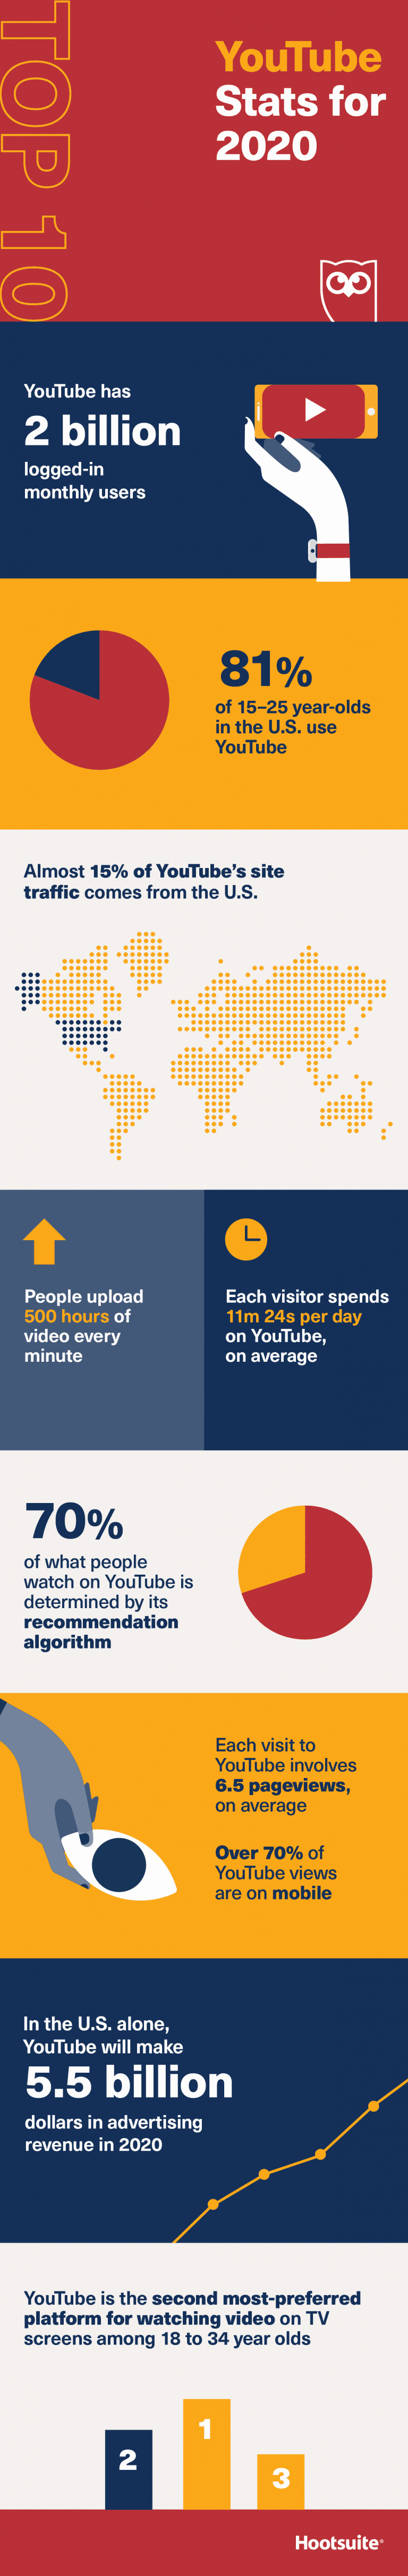 infographie chiffres youtube us 2020